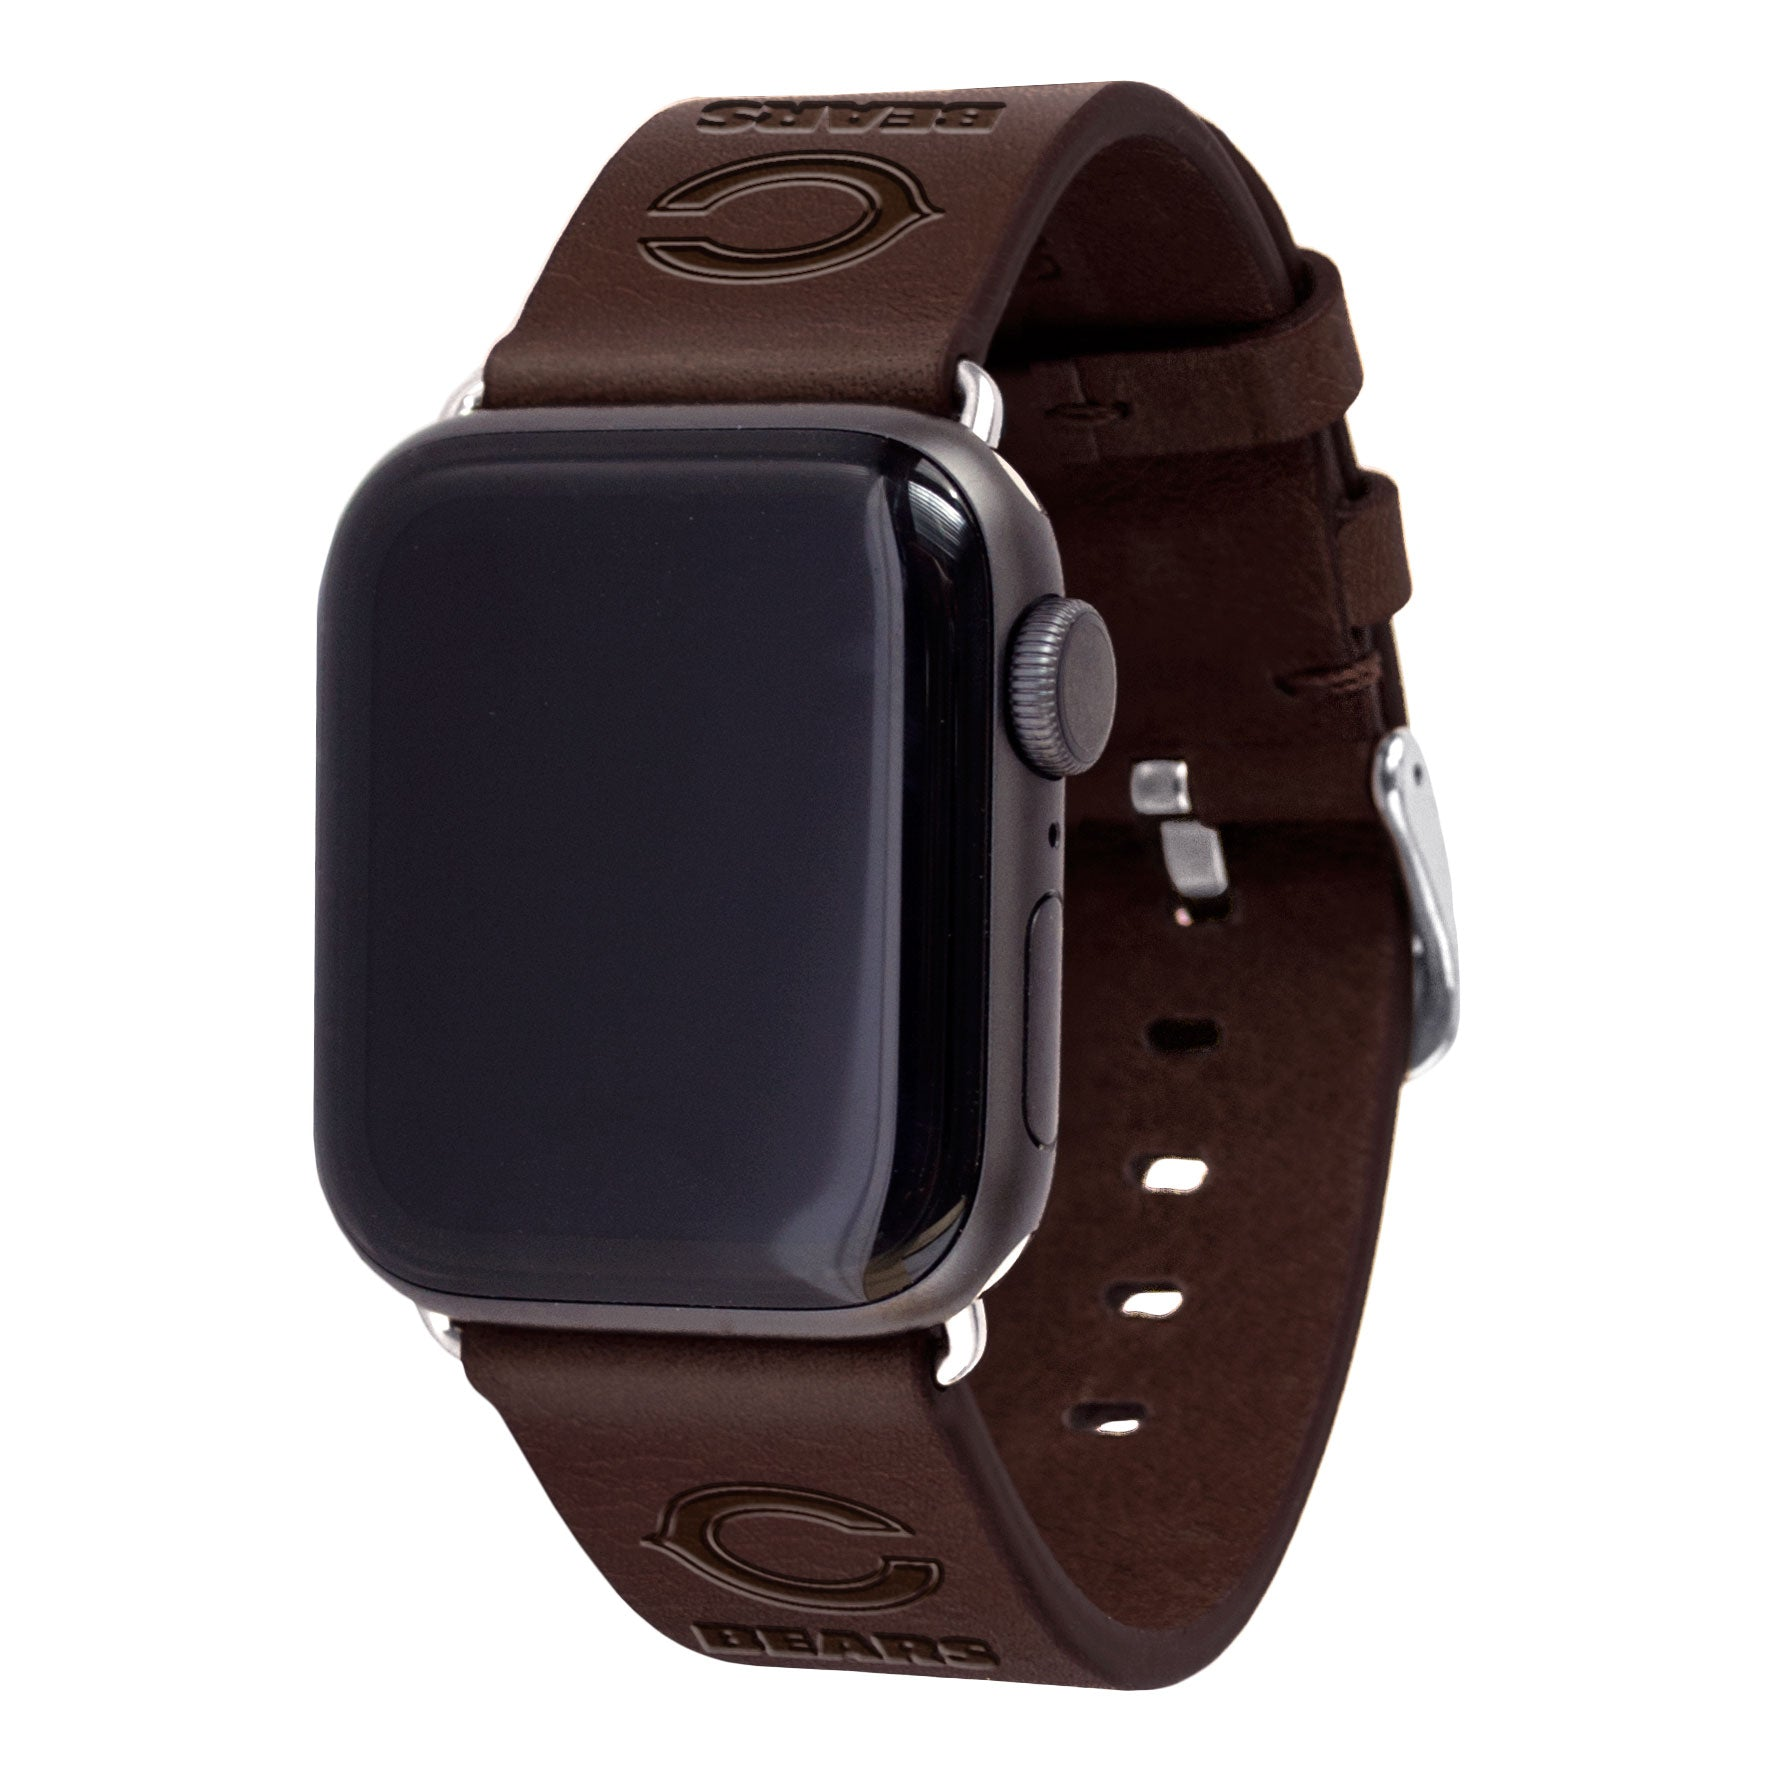 Chicago Bears Leather Apple Watch Band - AffinityBands